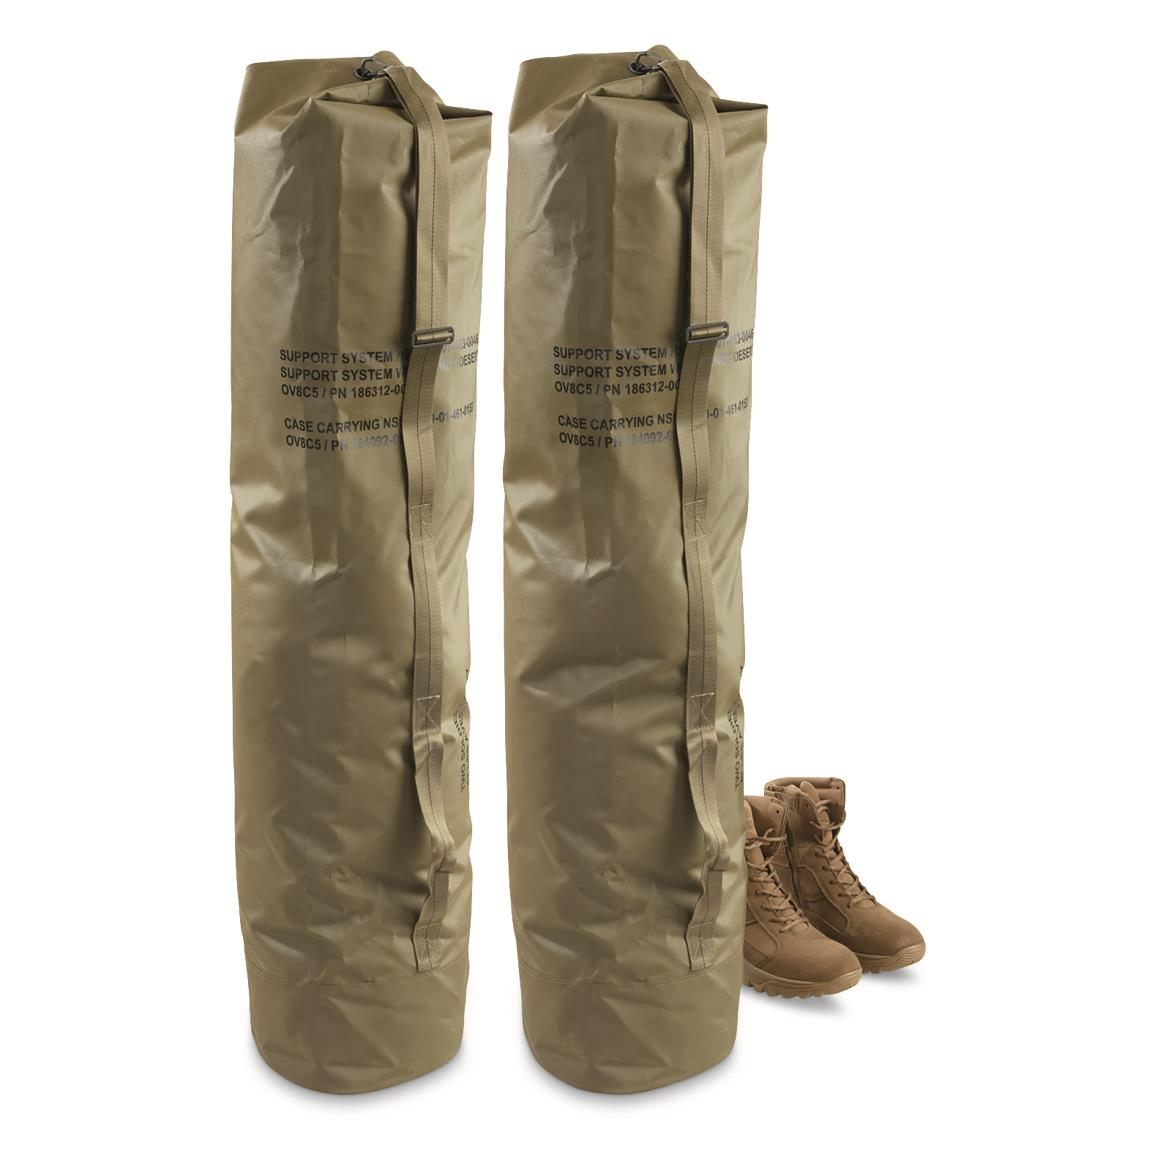 U.S. Military Surplus XL Rubberized Duffel Bags, 2 Pack, New